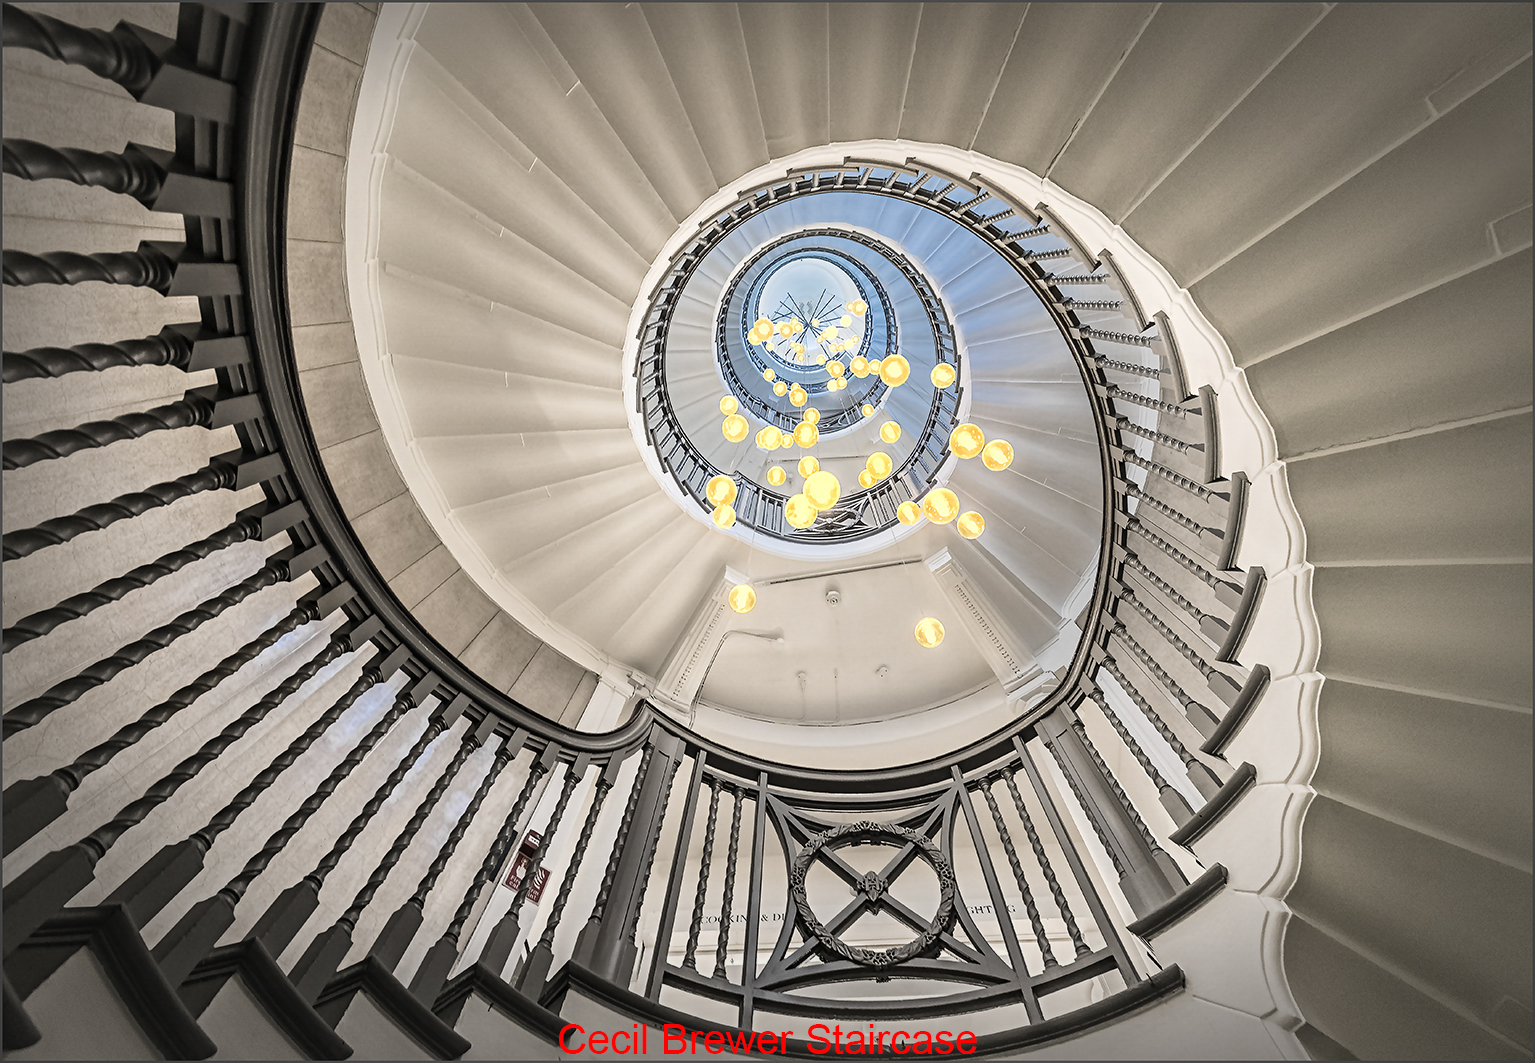 Cecil Brewer Staircase, United Kingdom